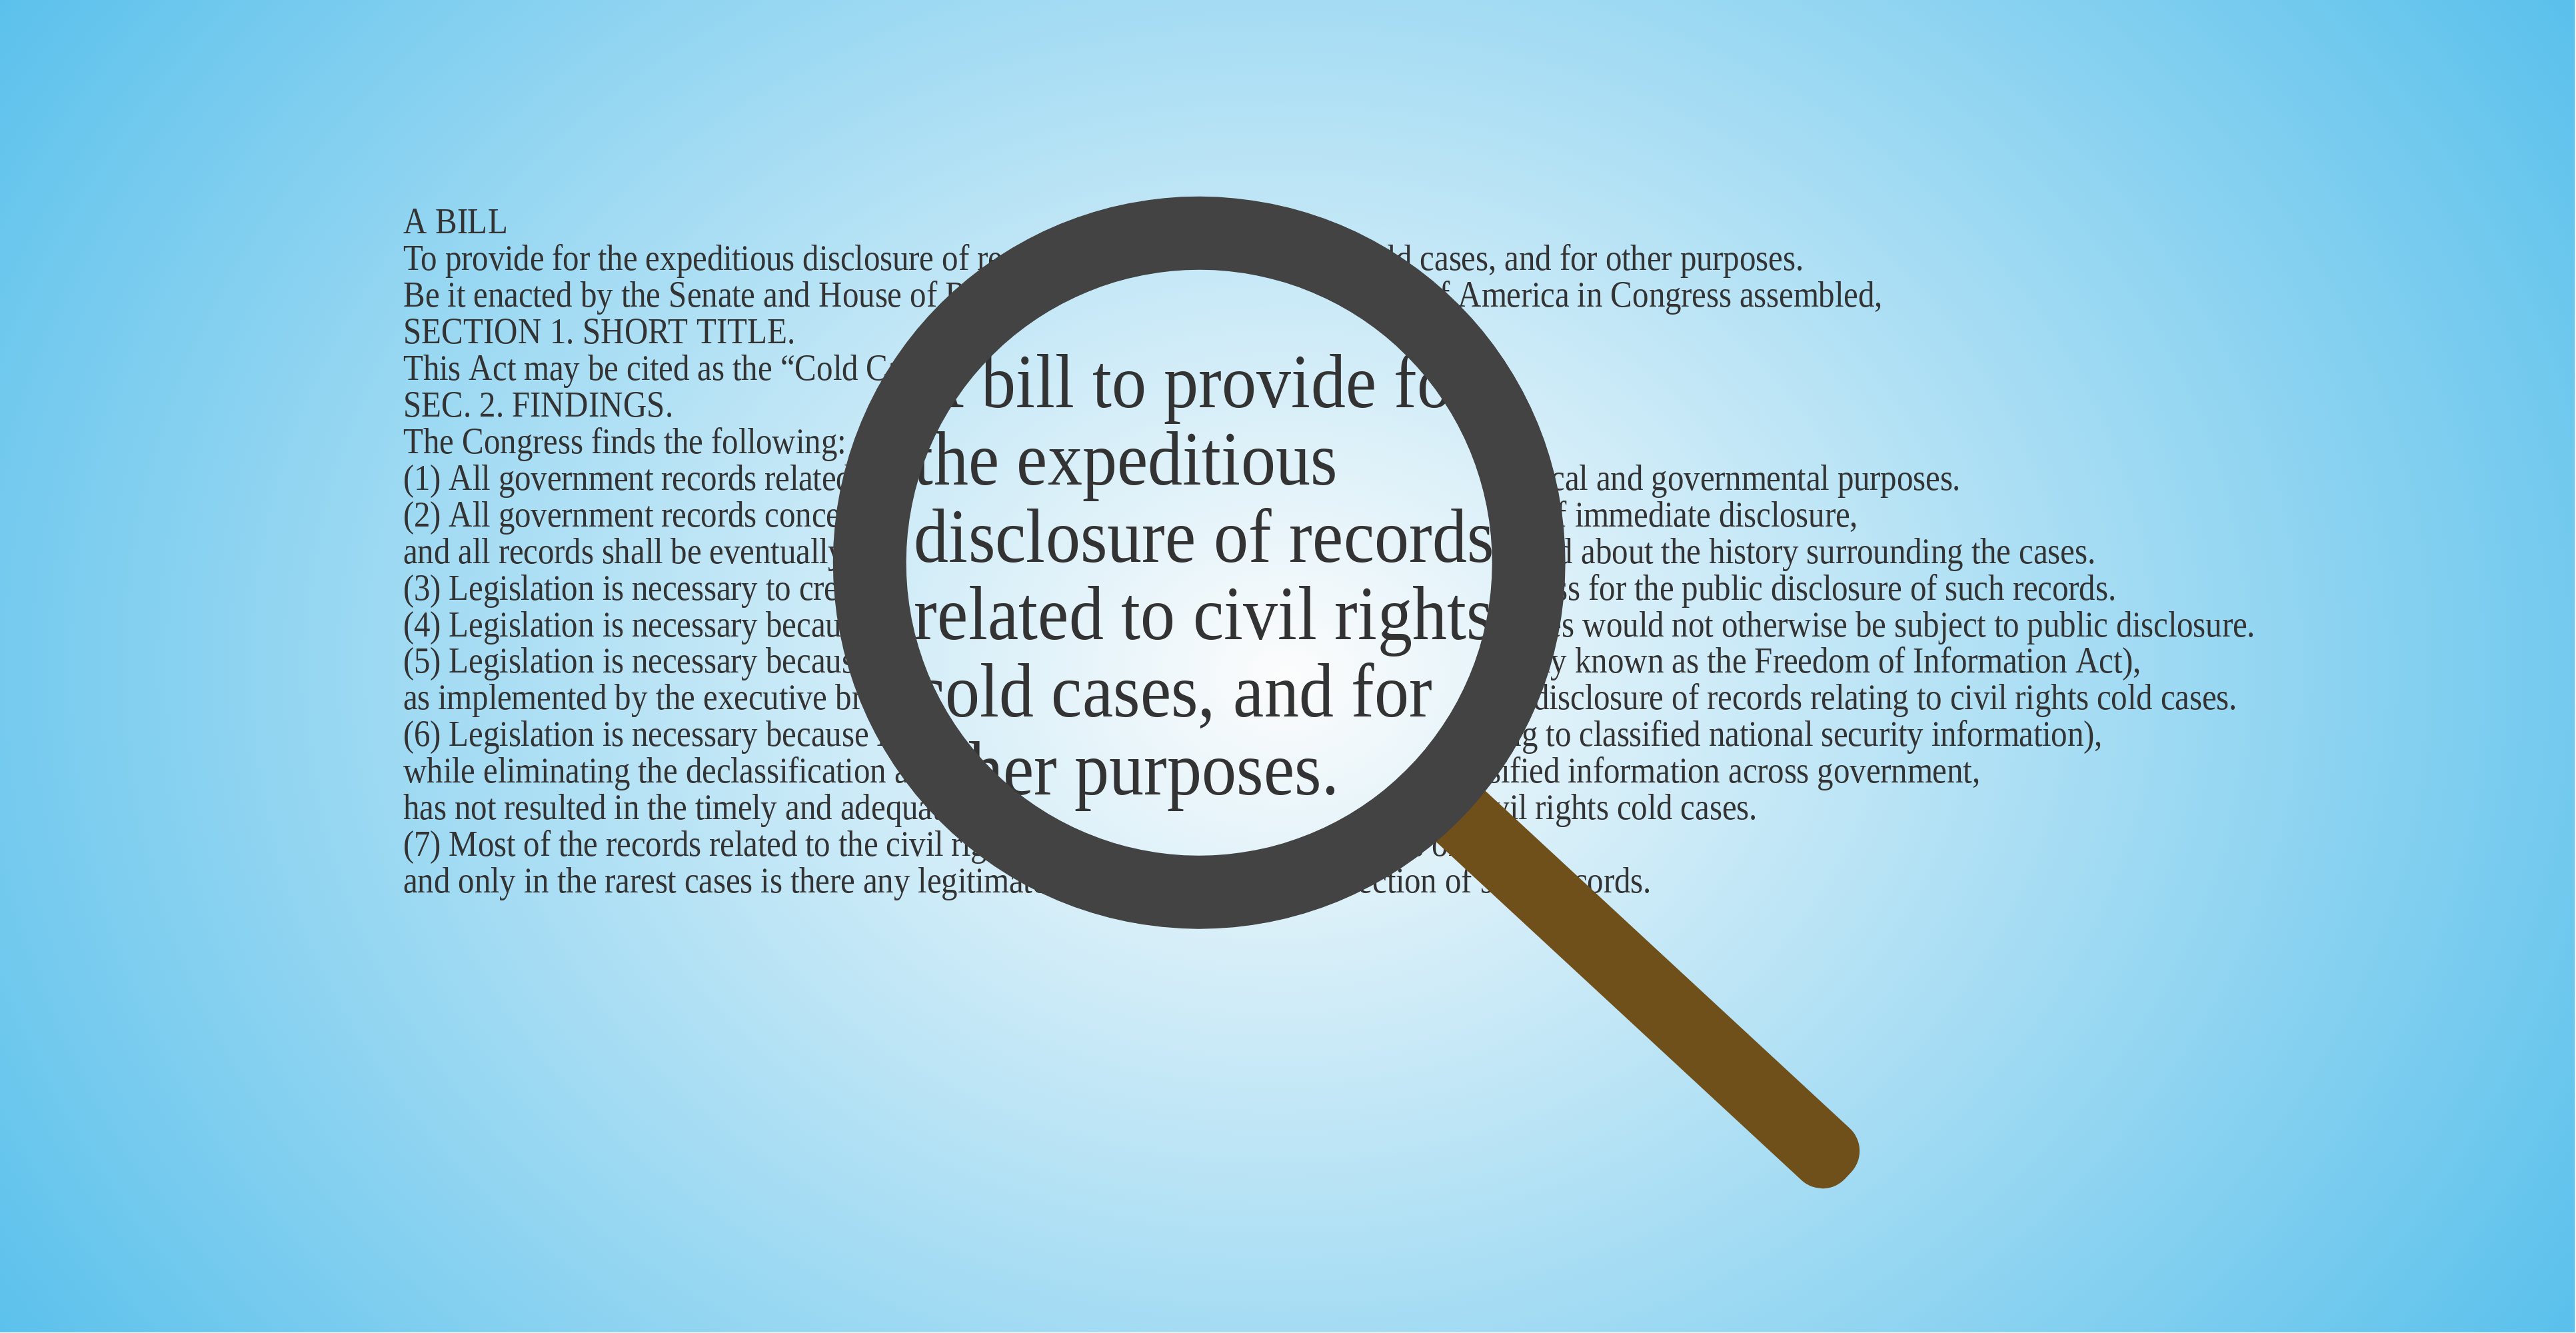 Graphic of magnifying glass over text